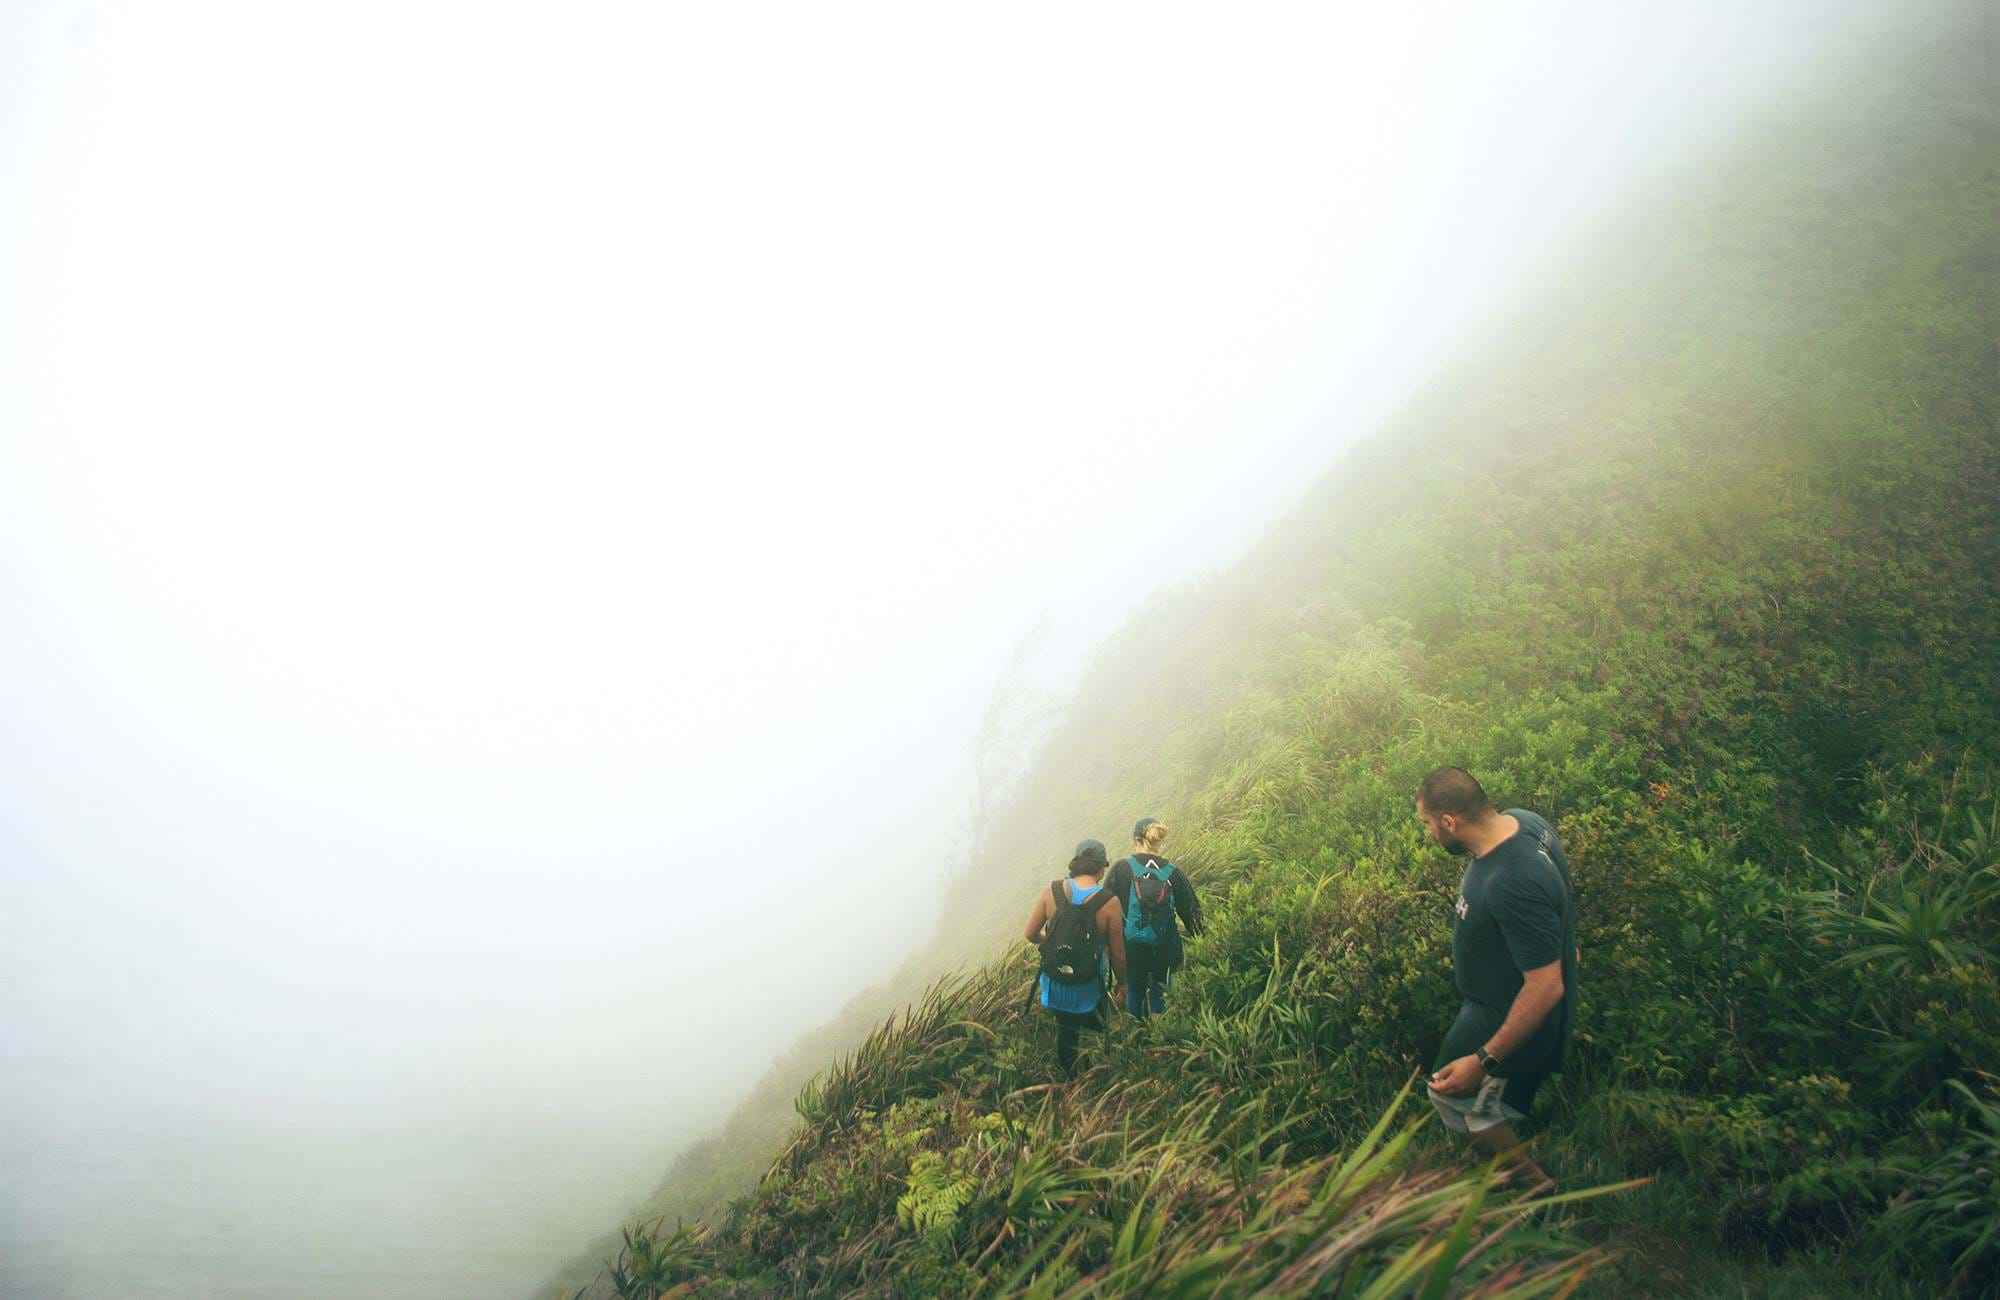 hawaii-trekking-in-foggy-wheather-cover